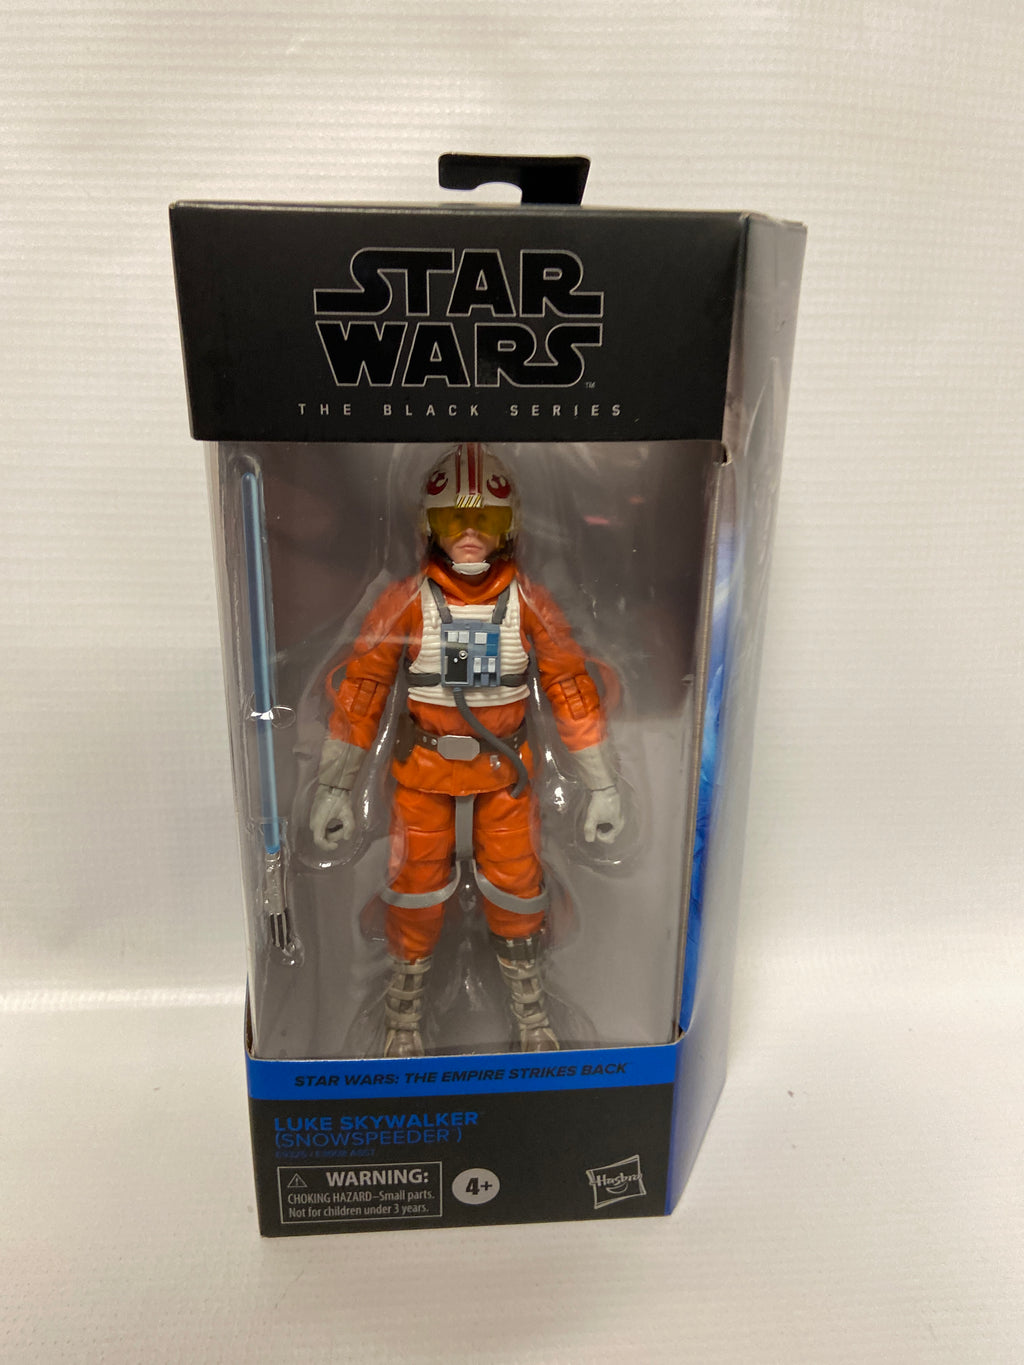 Hasbro Star Wars Black Series Luke Skywalker snowspeeder Pilot (Empire Strikes Back)